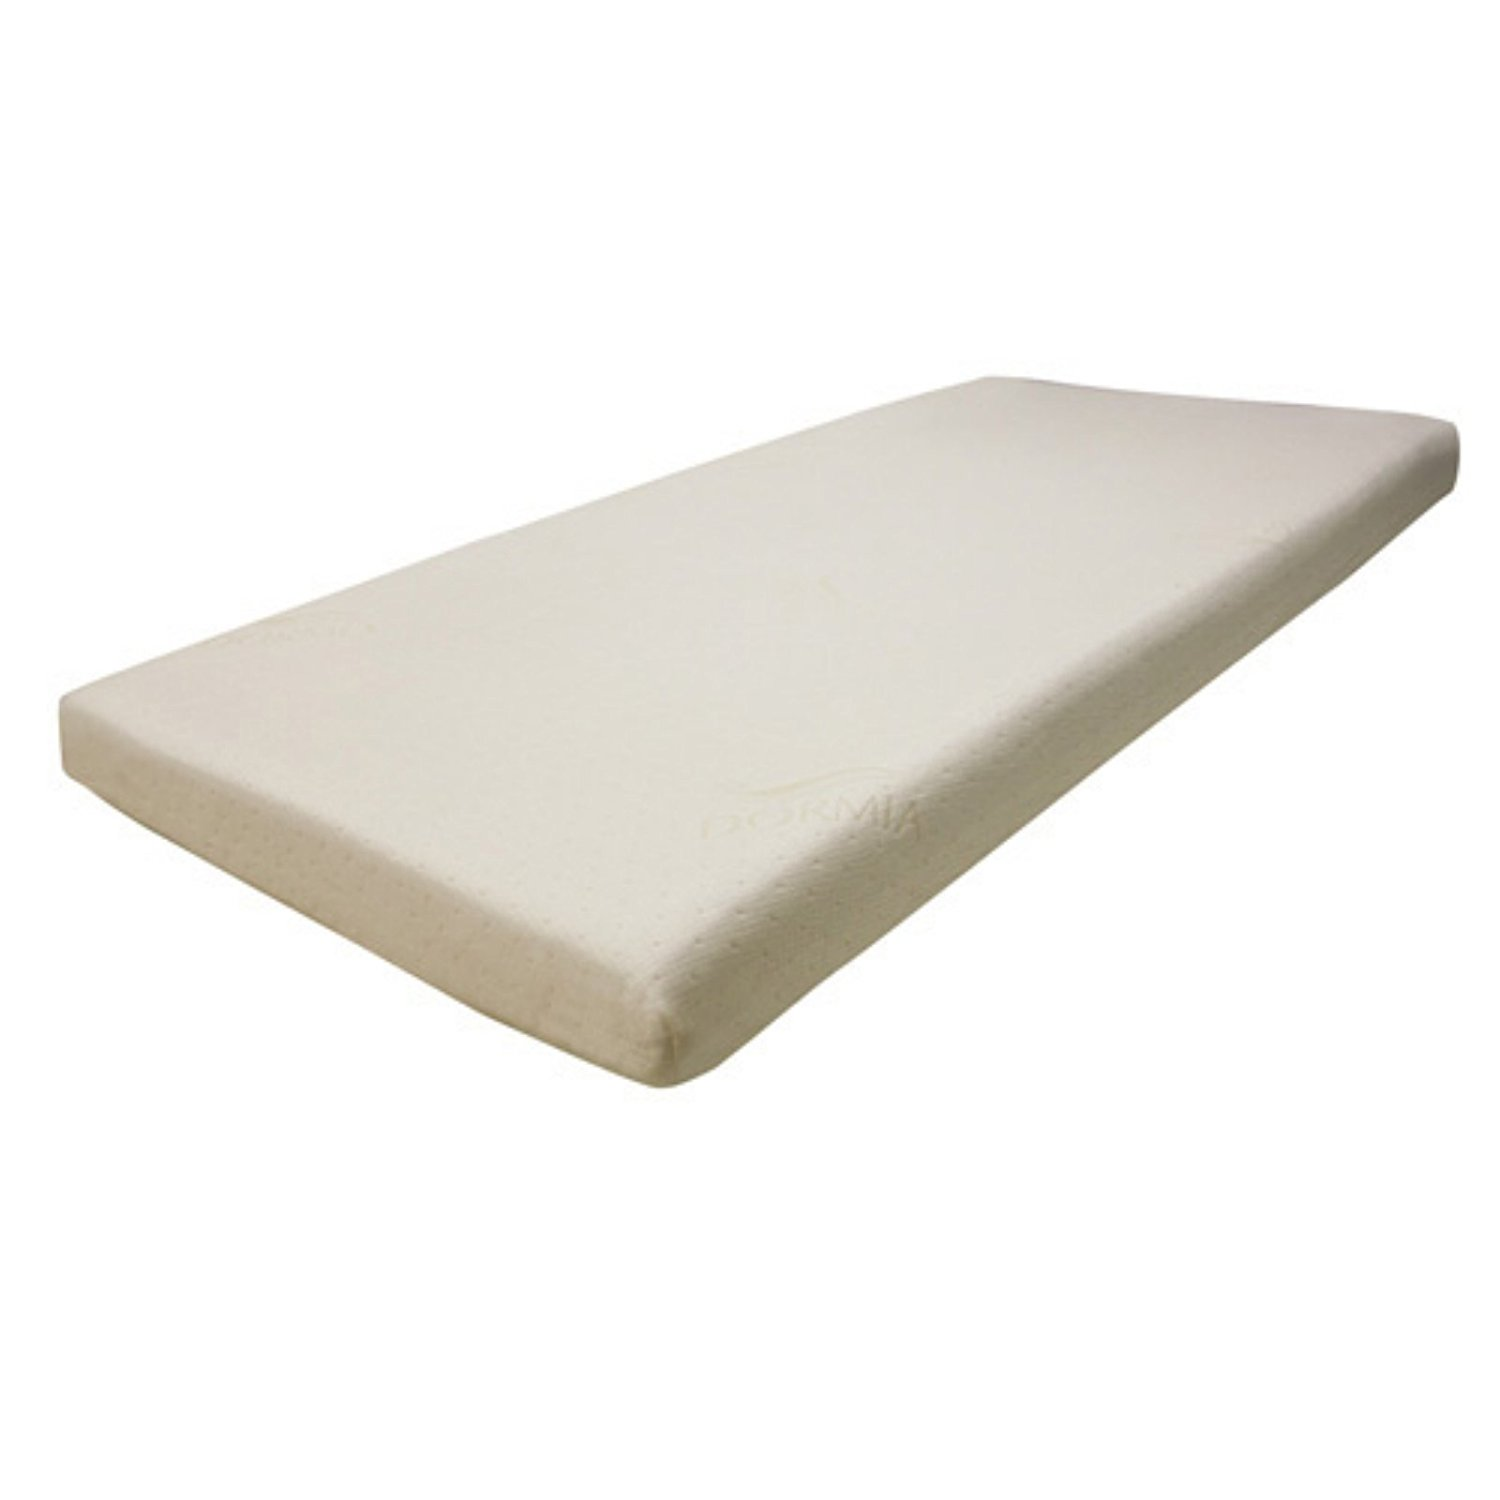 Classic Brands Memory Foam Sofa Mattress | Replacement Mattress for Sofa Bed Sleeper, Twin Size